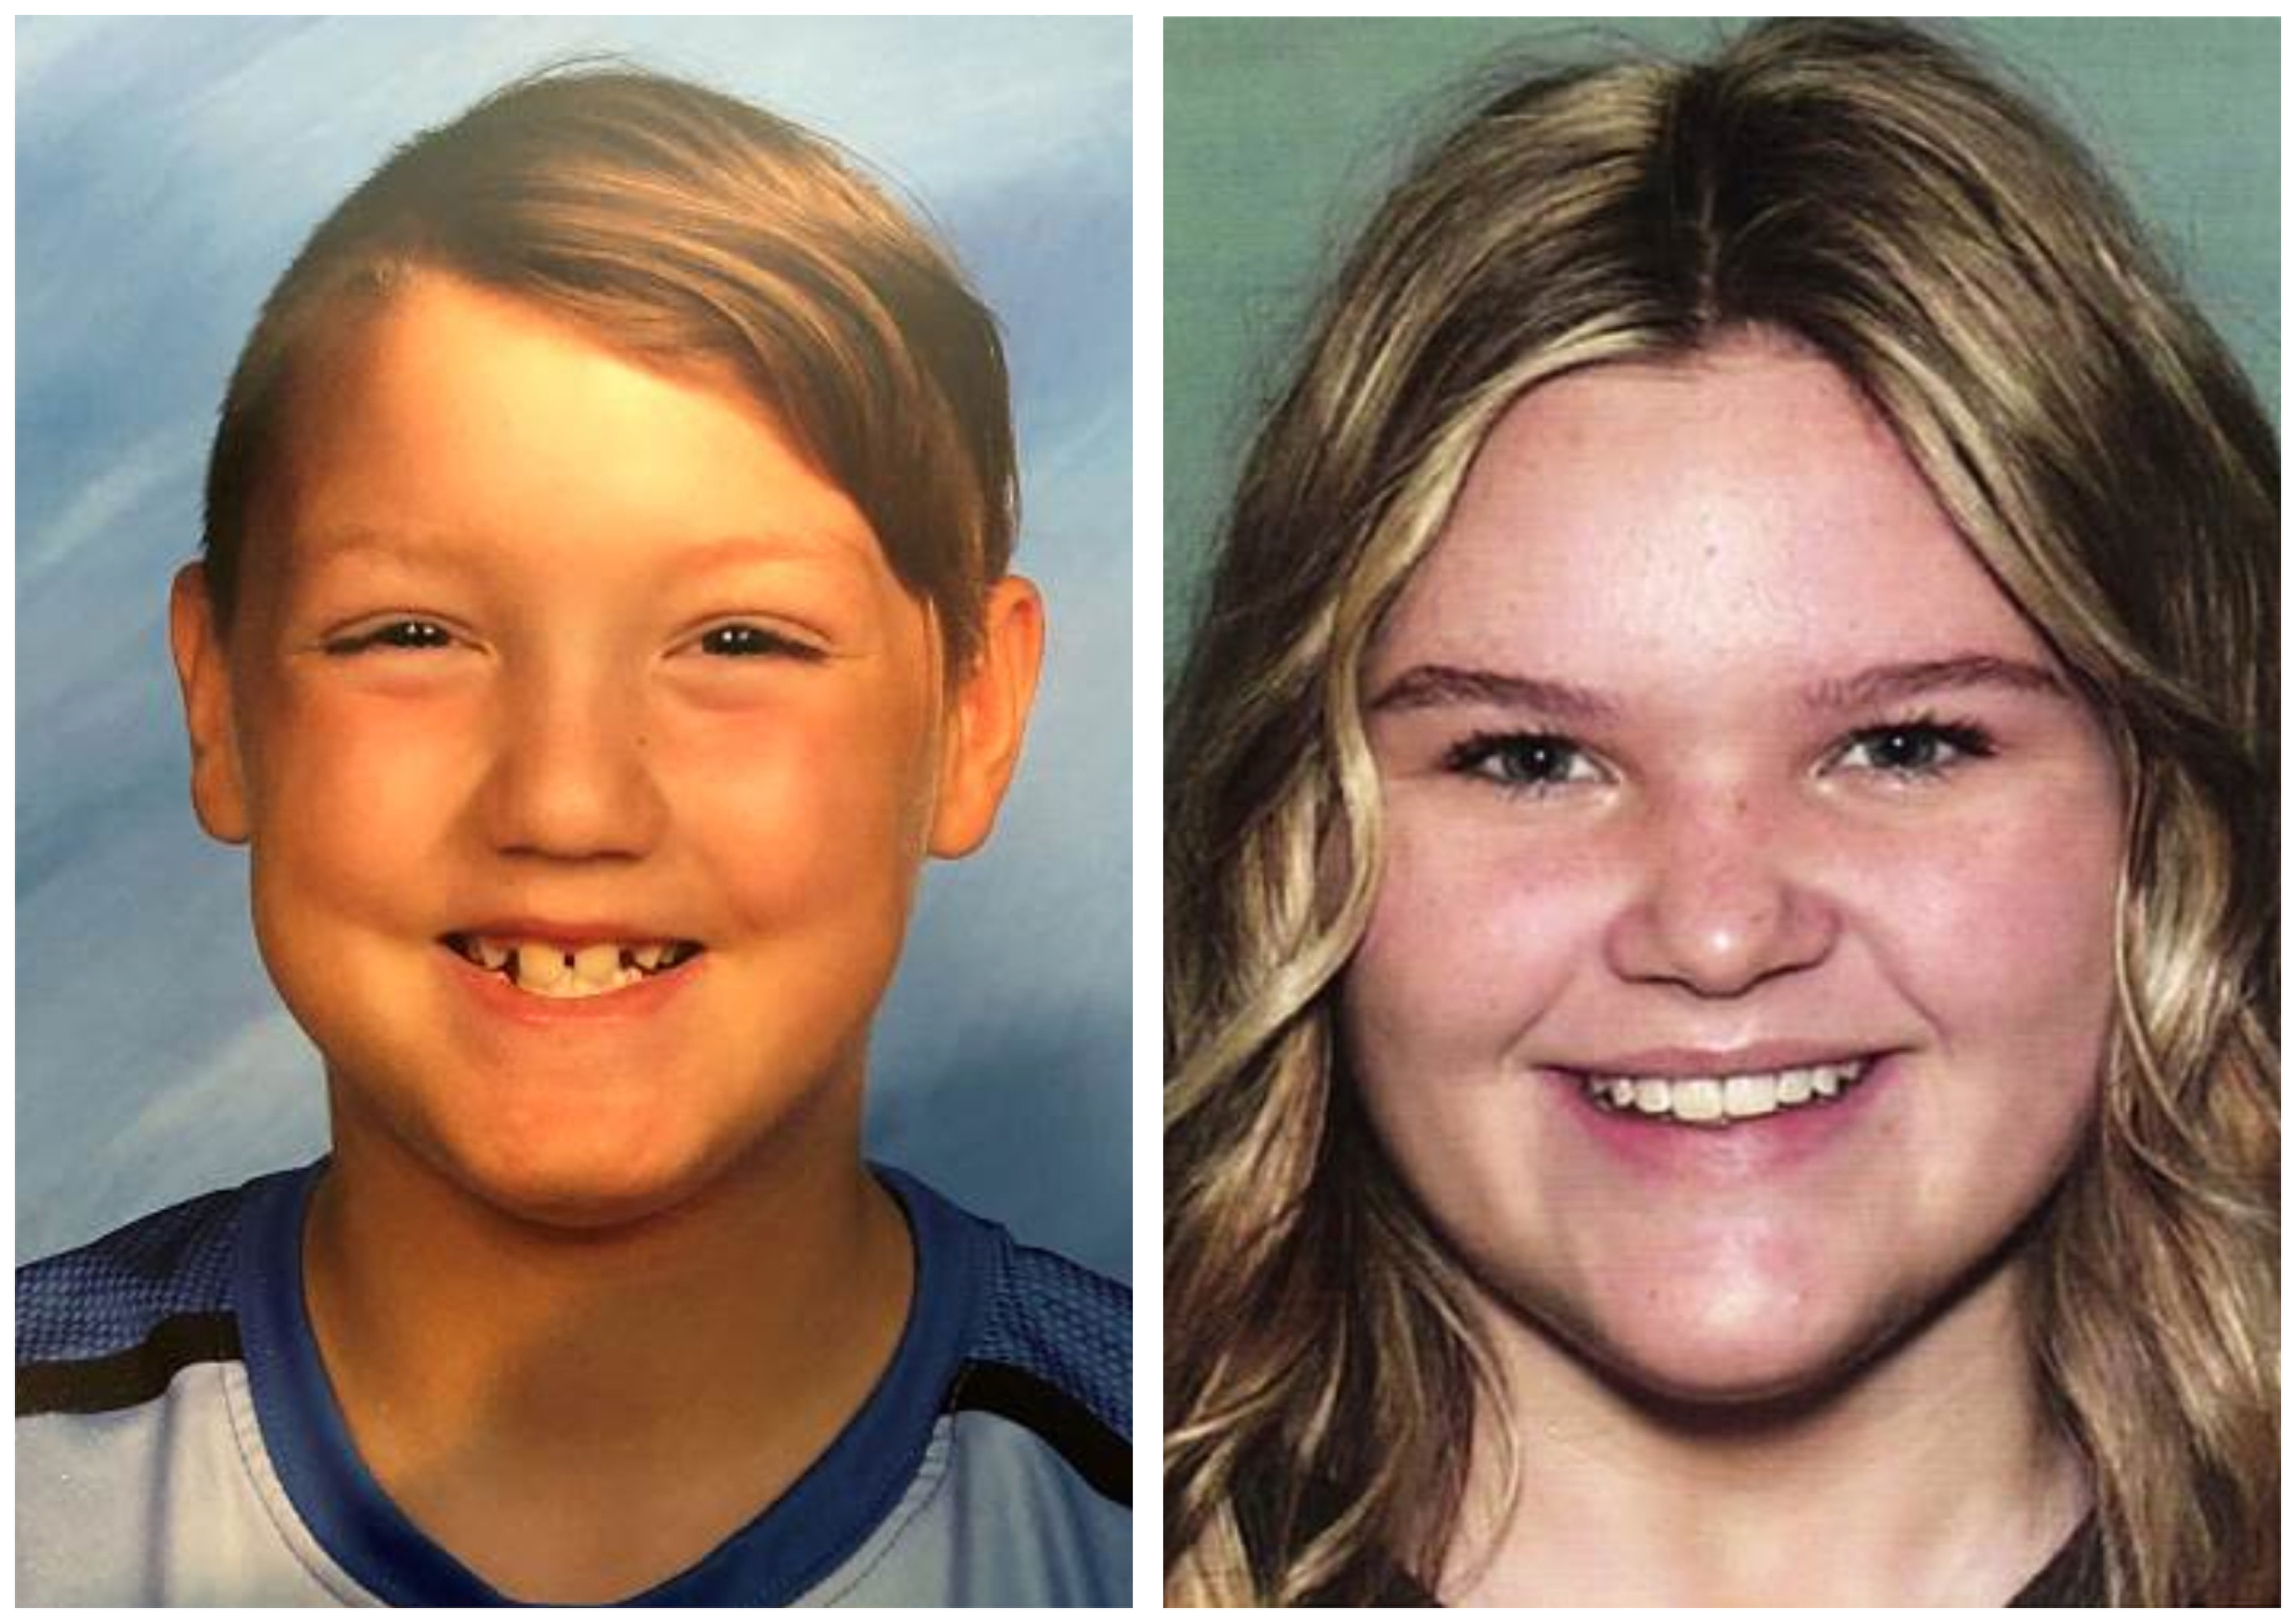 Case of 2 missing kids grows to include deaths, cult rumors